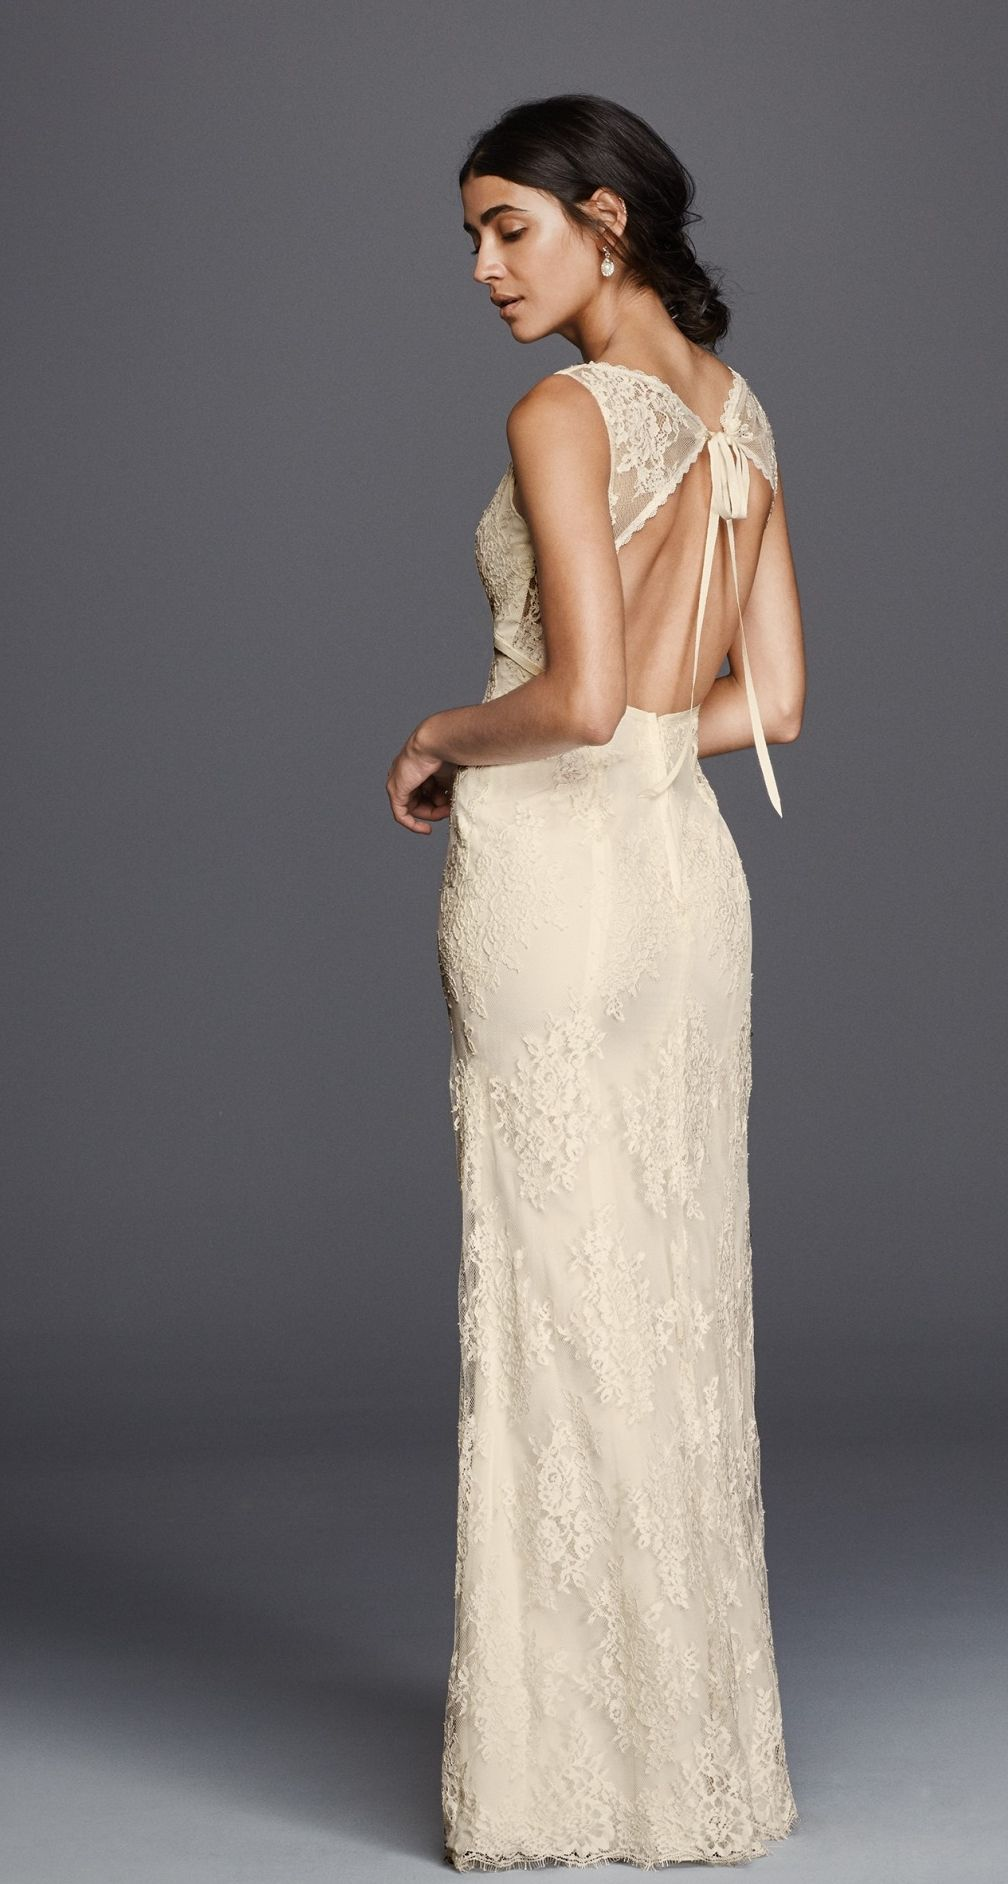 All over floral lace sheath wedding dress | Galina Flower Lace V ...